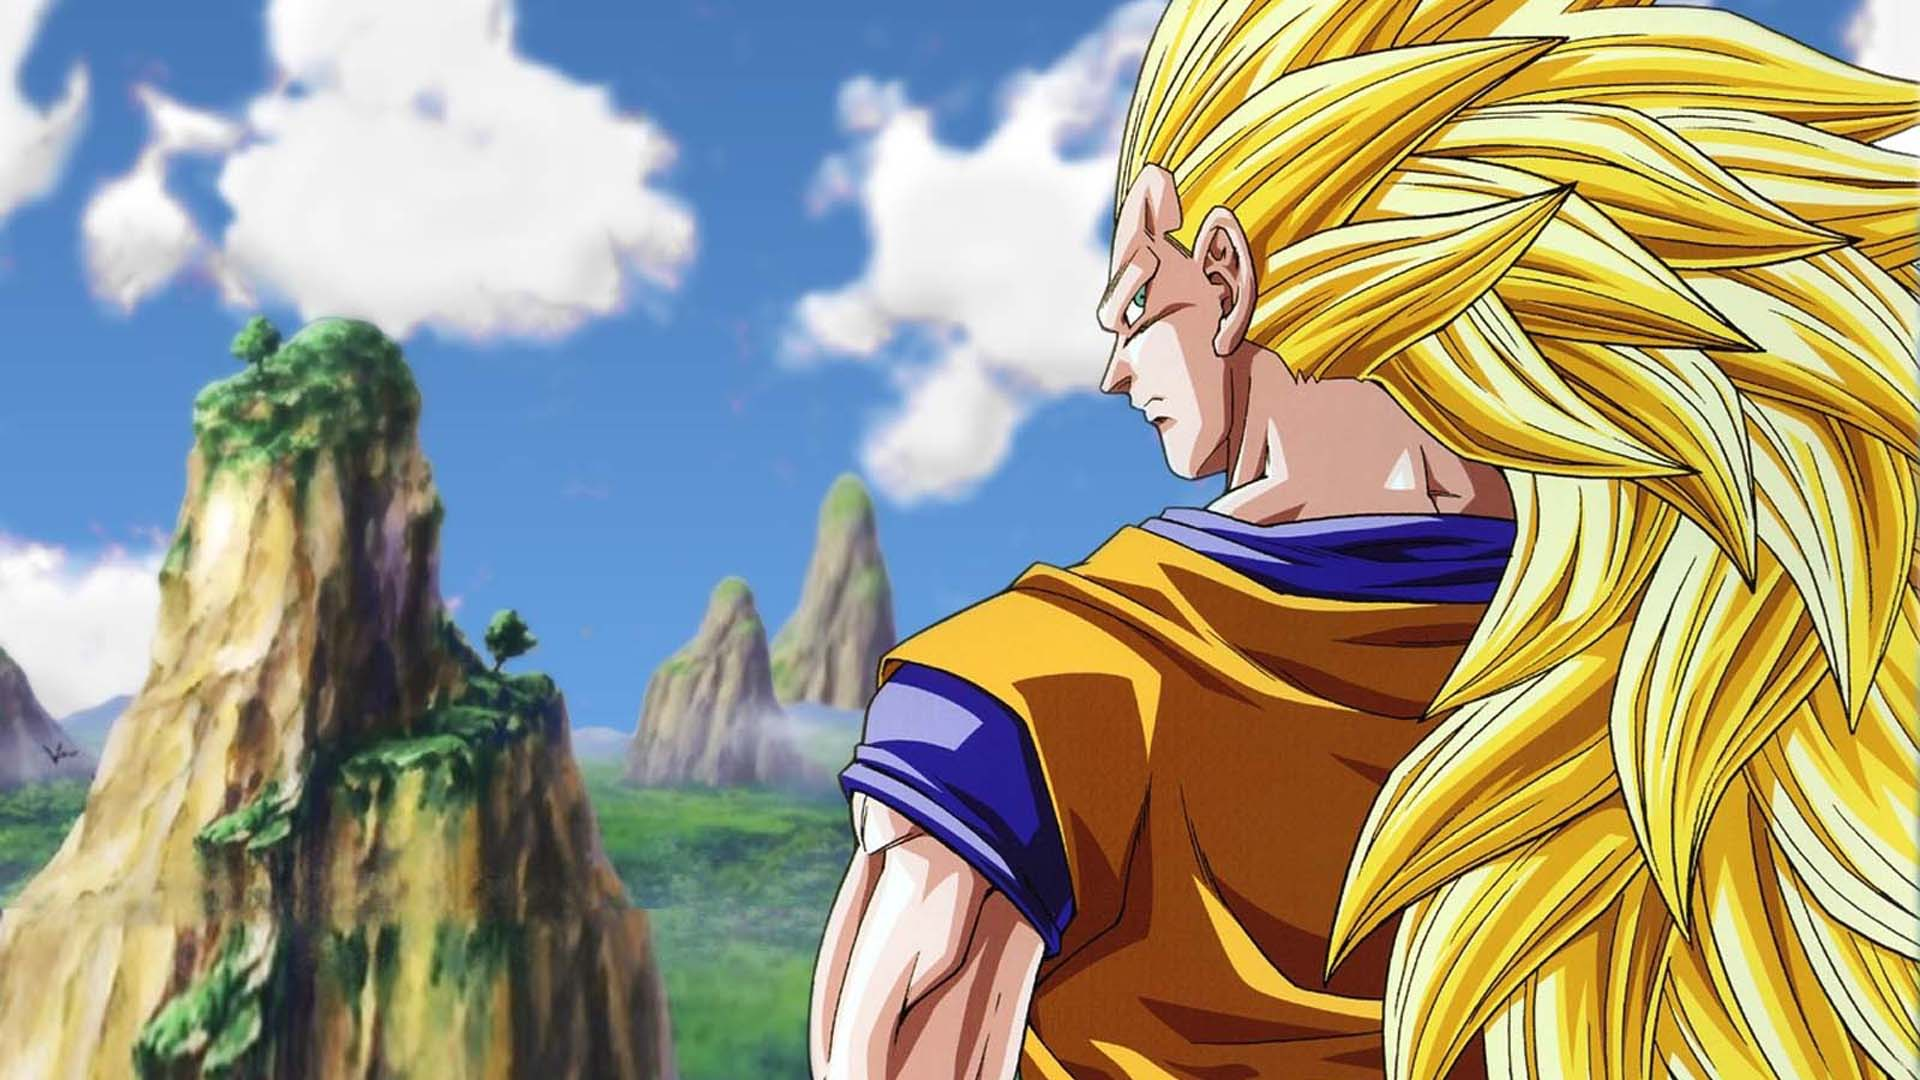 Dragon Ball Z wallpaper 16